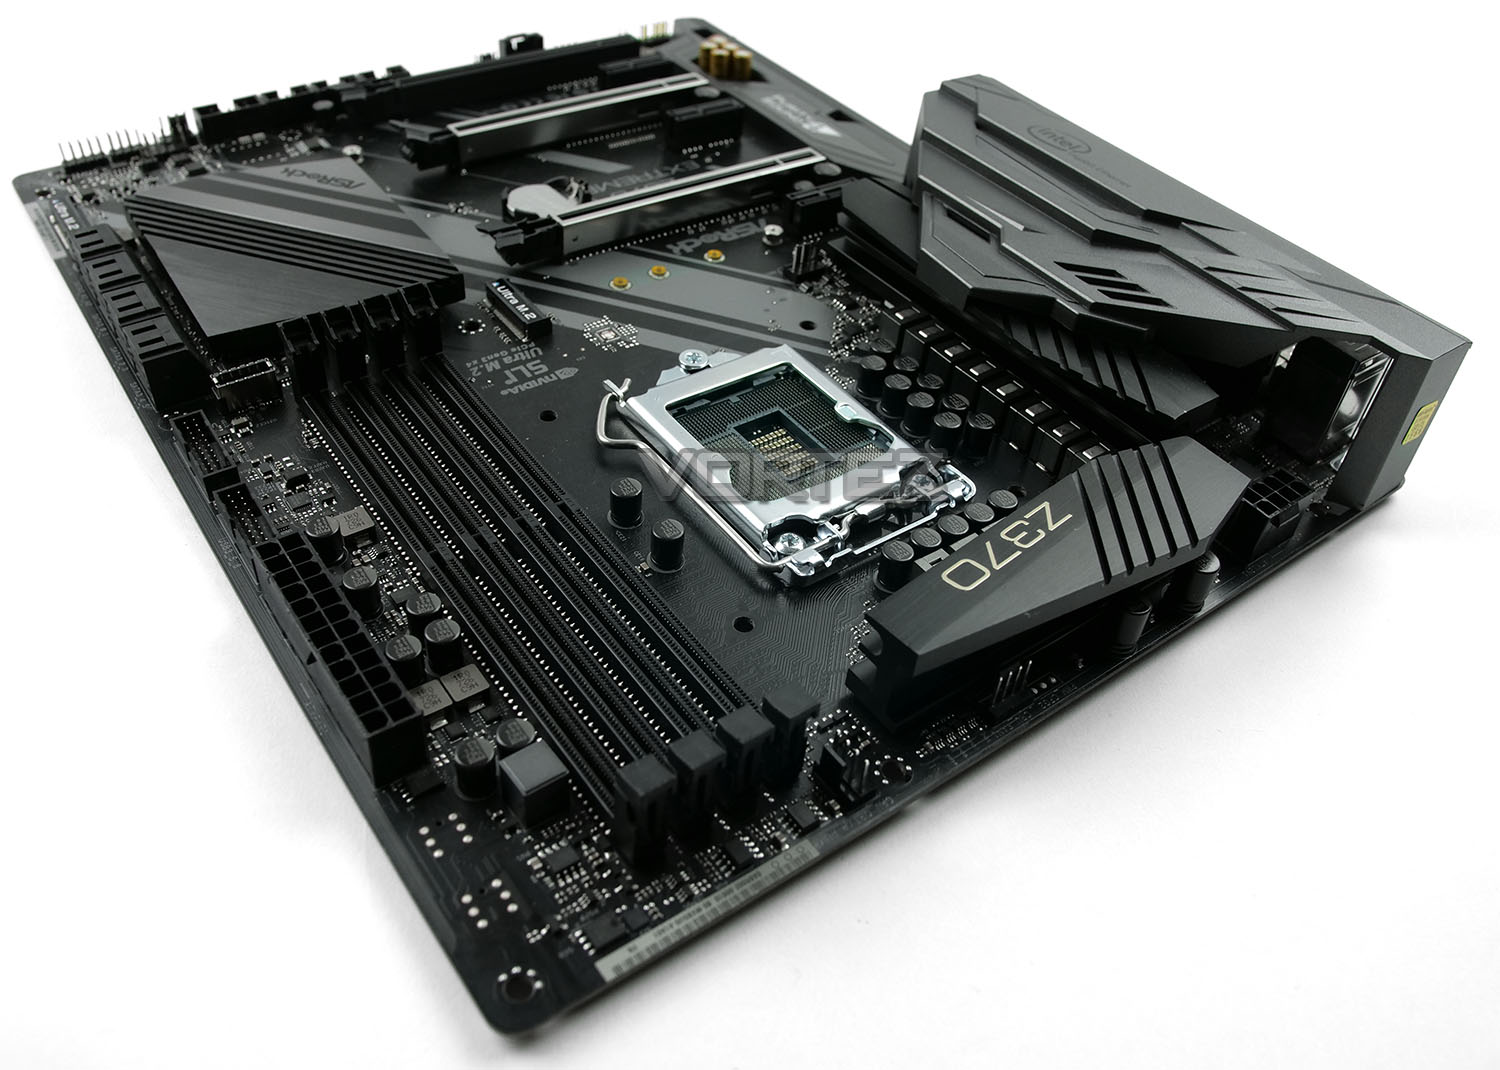 ASRock Z370 Extreme4 Review - Introduction